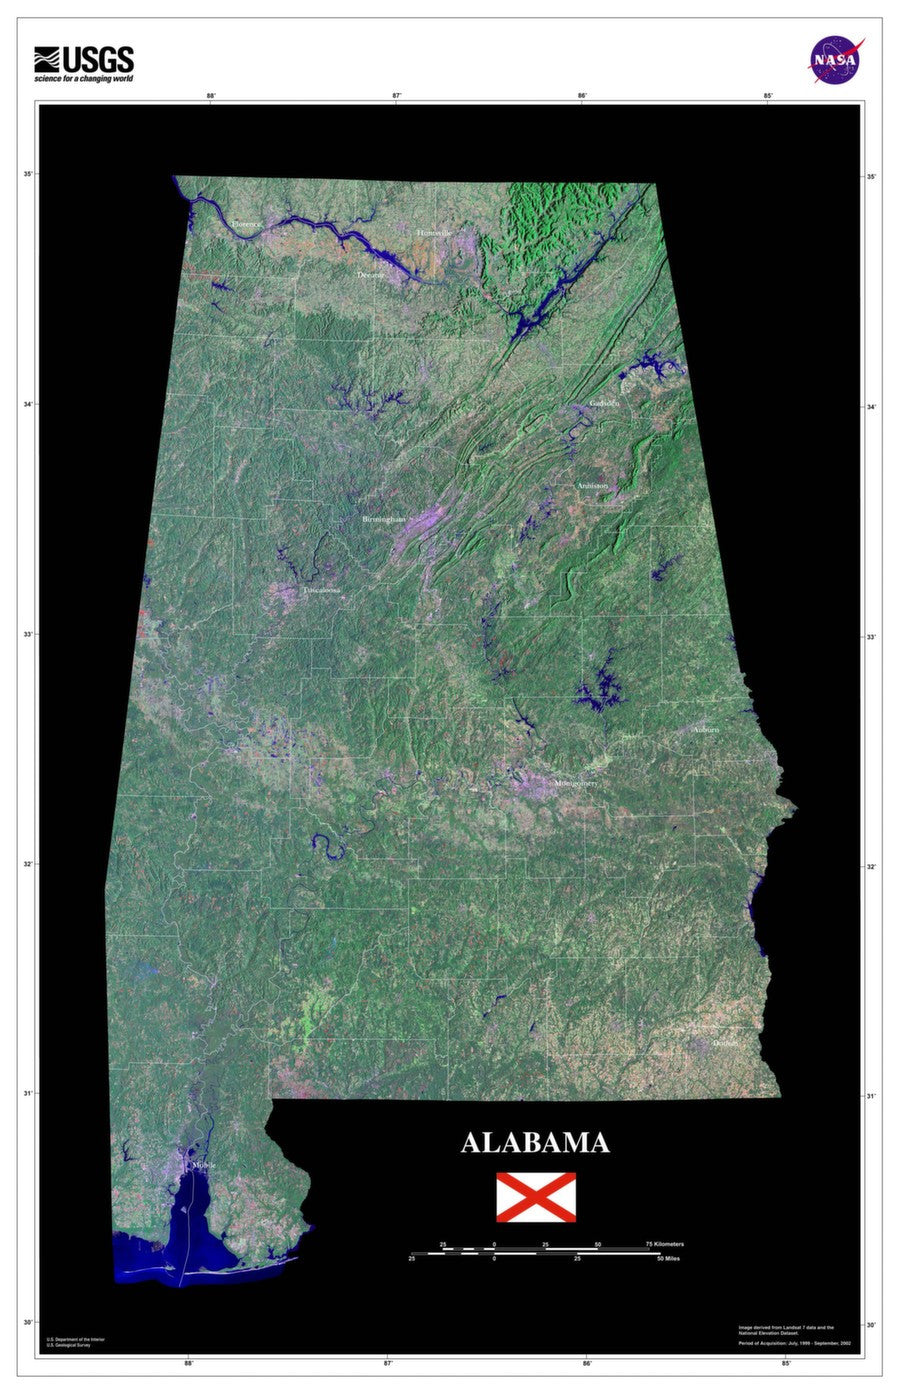 Alabama Satellite Imagery State Map Poster - TerraPrints.com